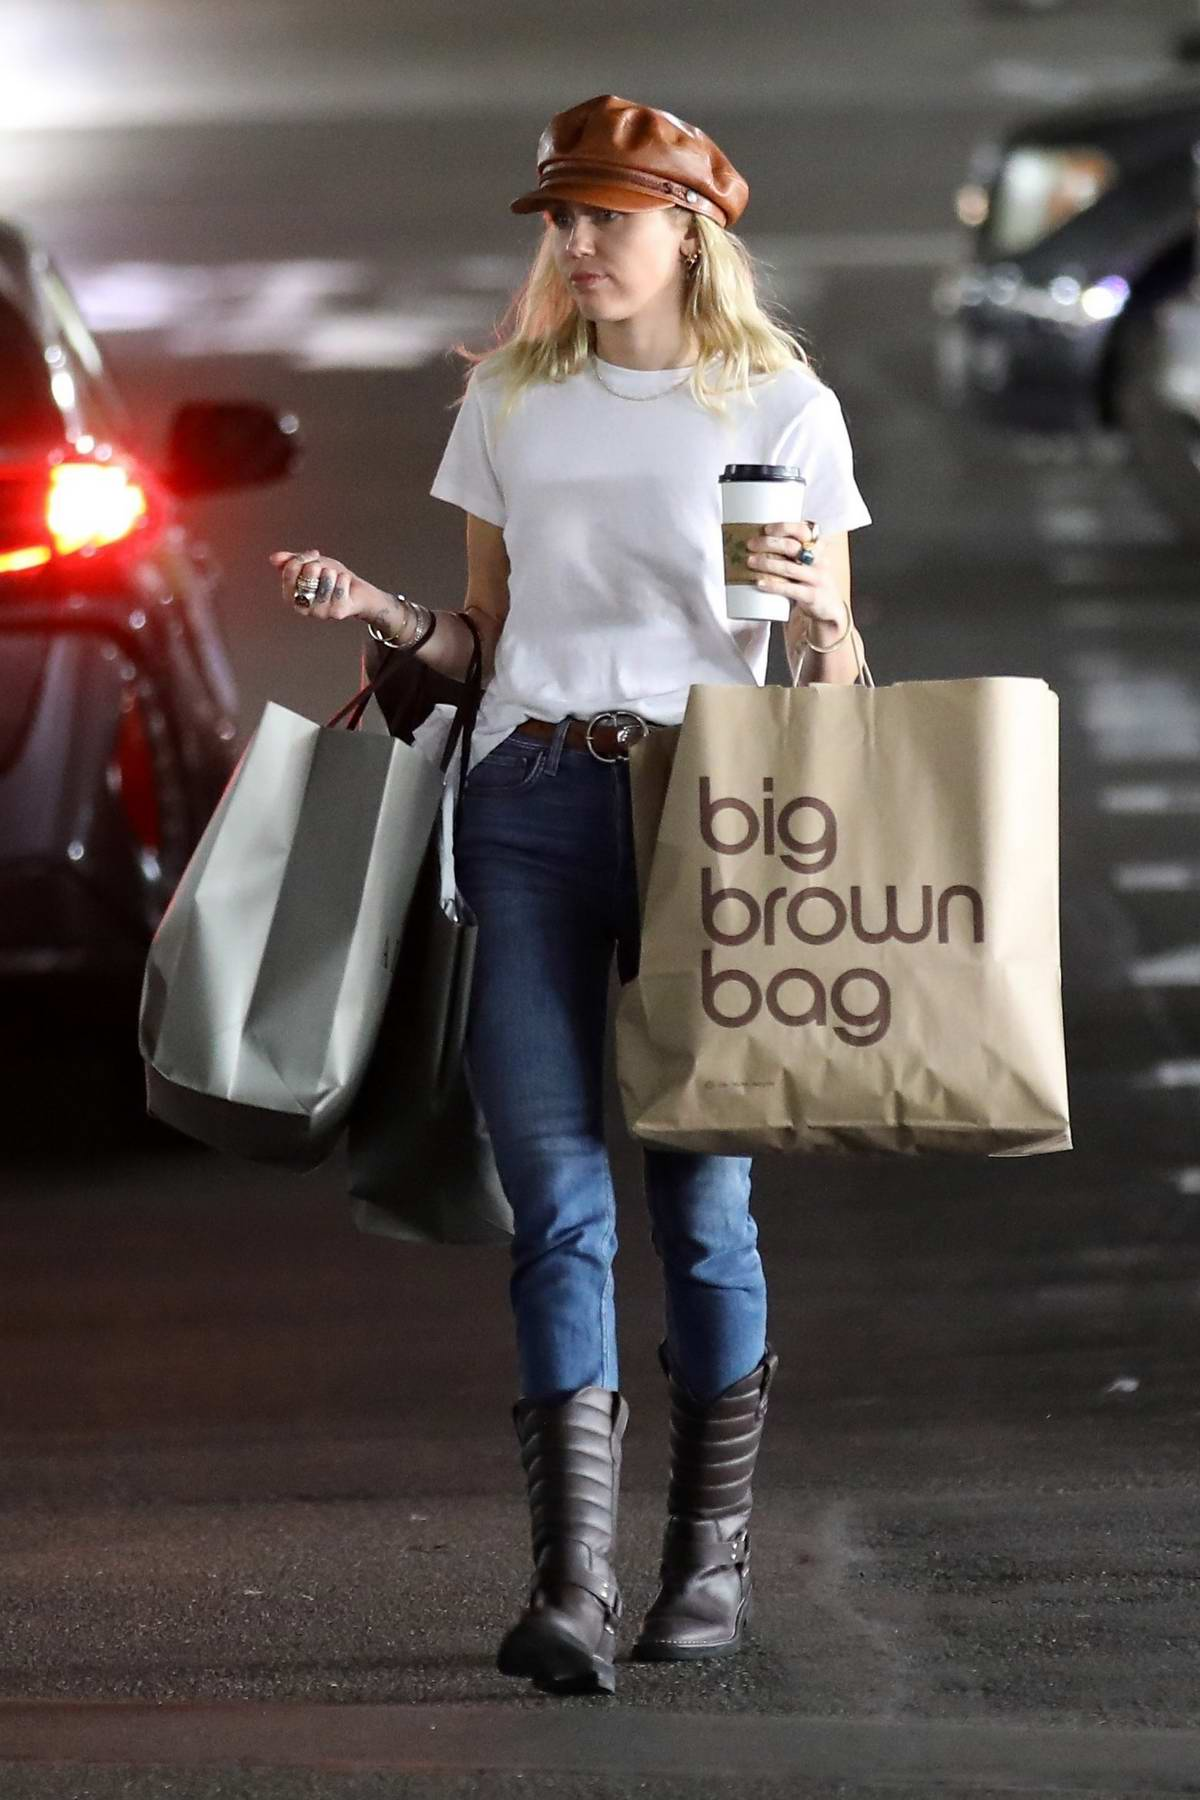 Miley Cyrus and Cody Simpson spotted during a coffee run at Blue Bottle Coffee in Studio City, Los Angeles